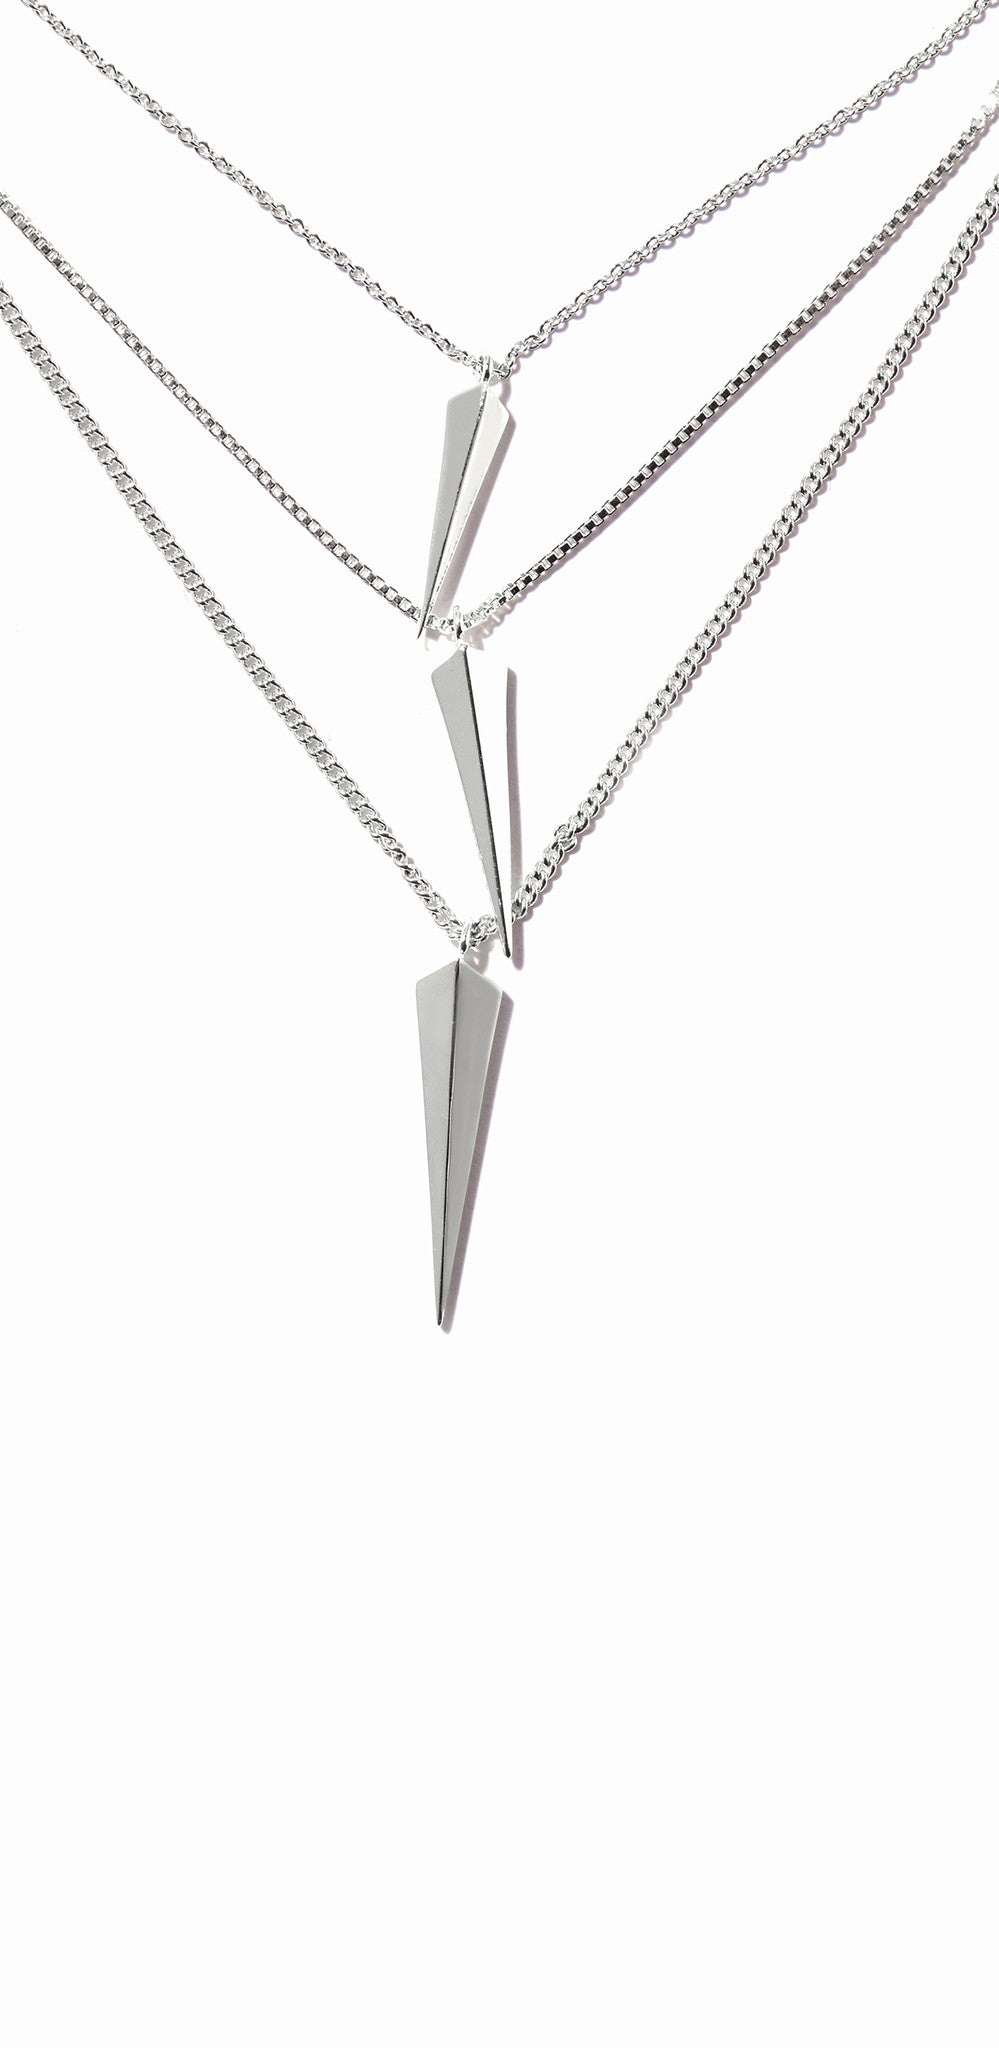 Vide Three-layered Necklace - Rhodium